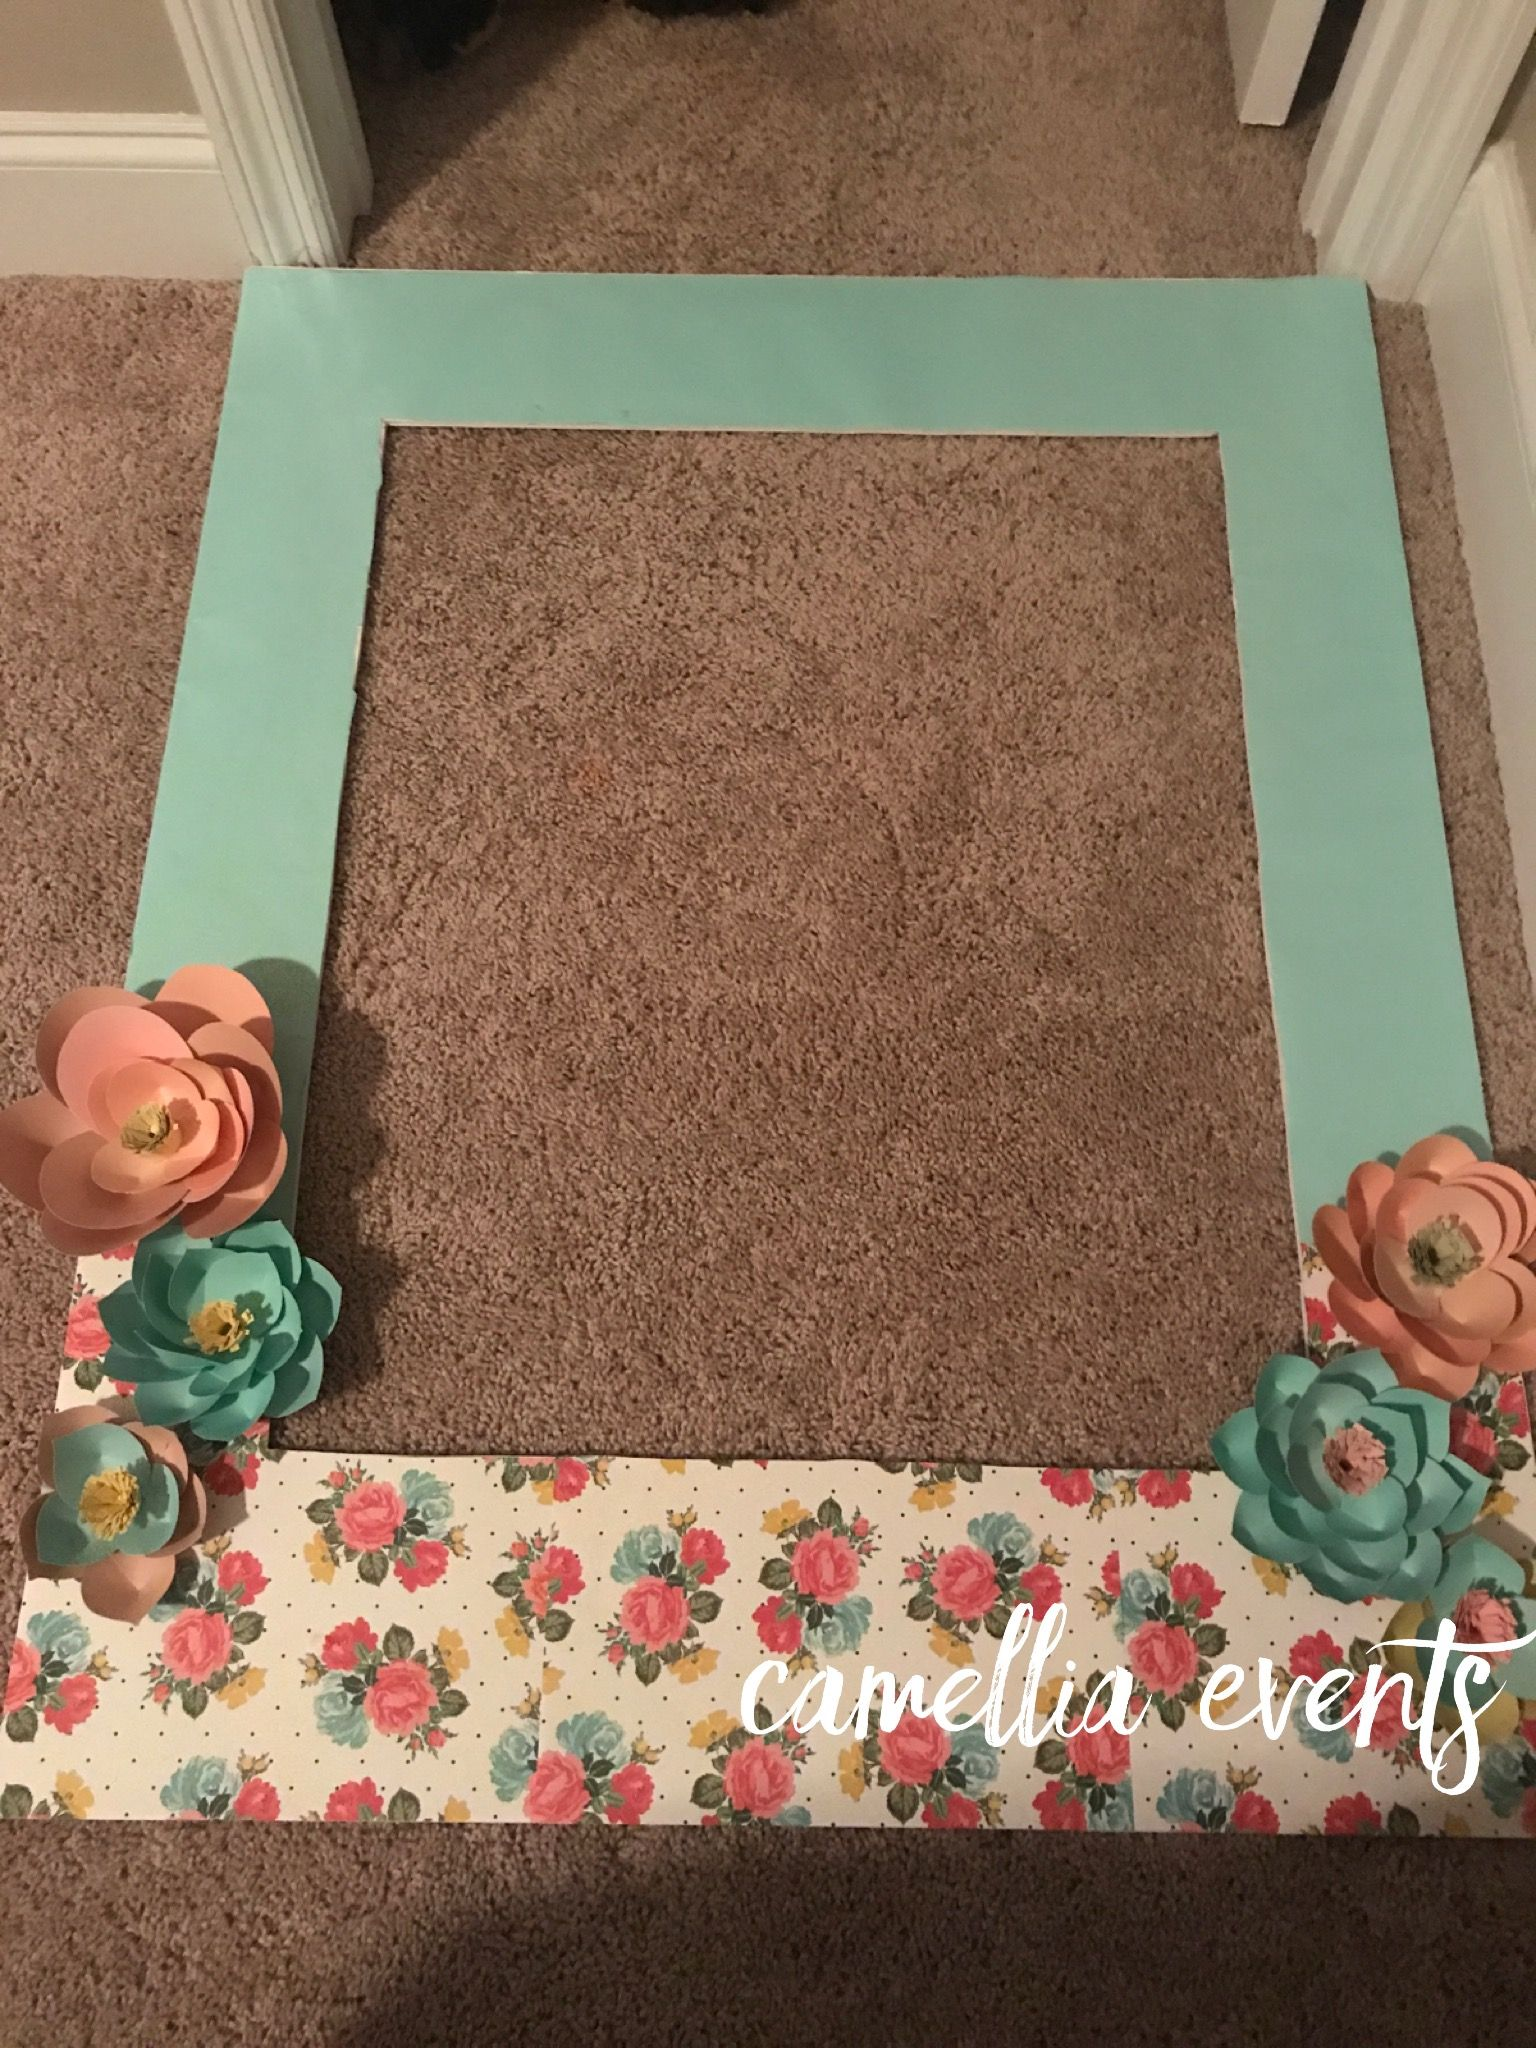 Garden decor for baby shower  Garden Theme Baby Shower  A Baby Is Blooming  Photo frame  Brius